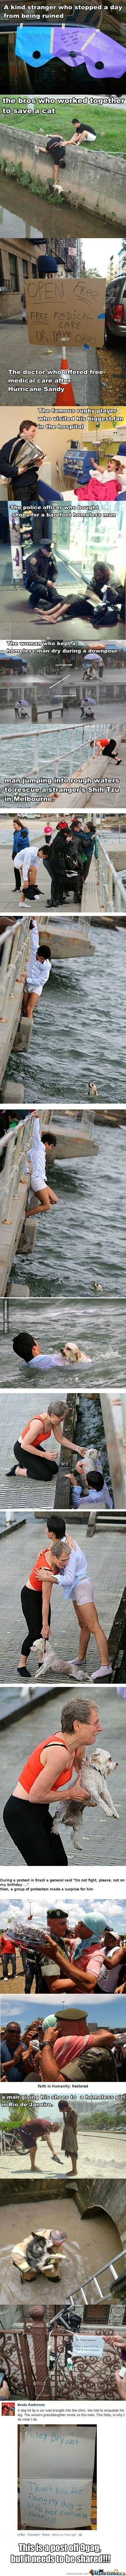 Faith In Humanity Has Been Restored!